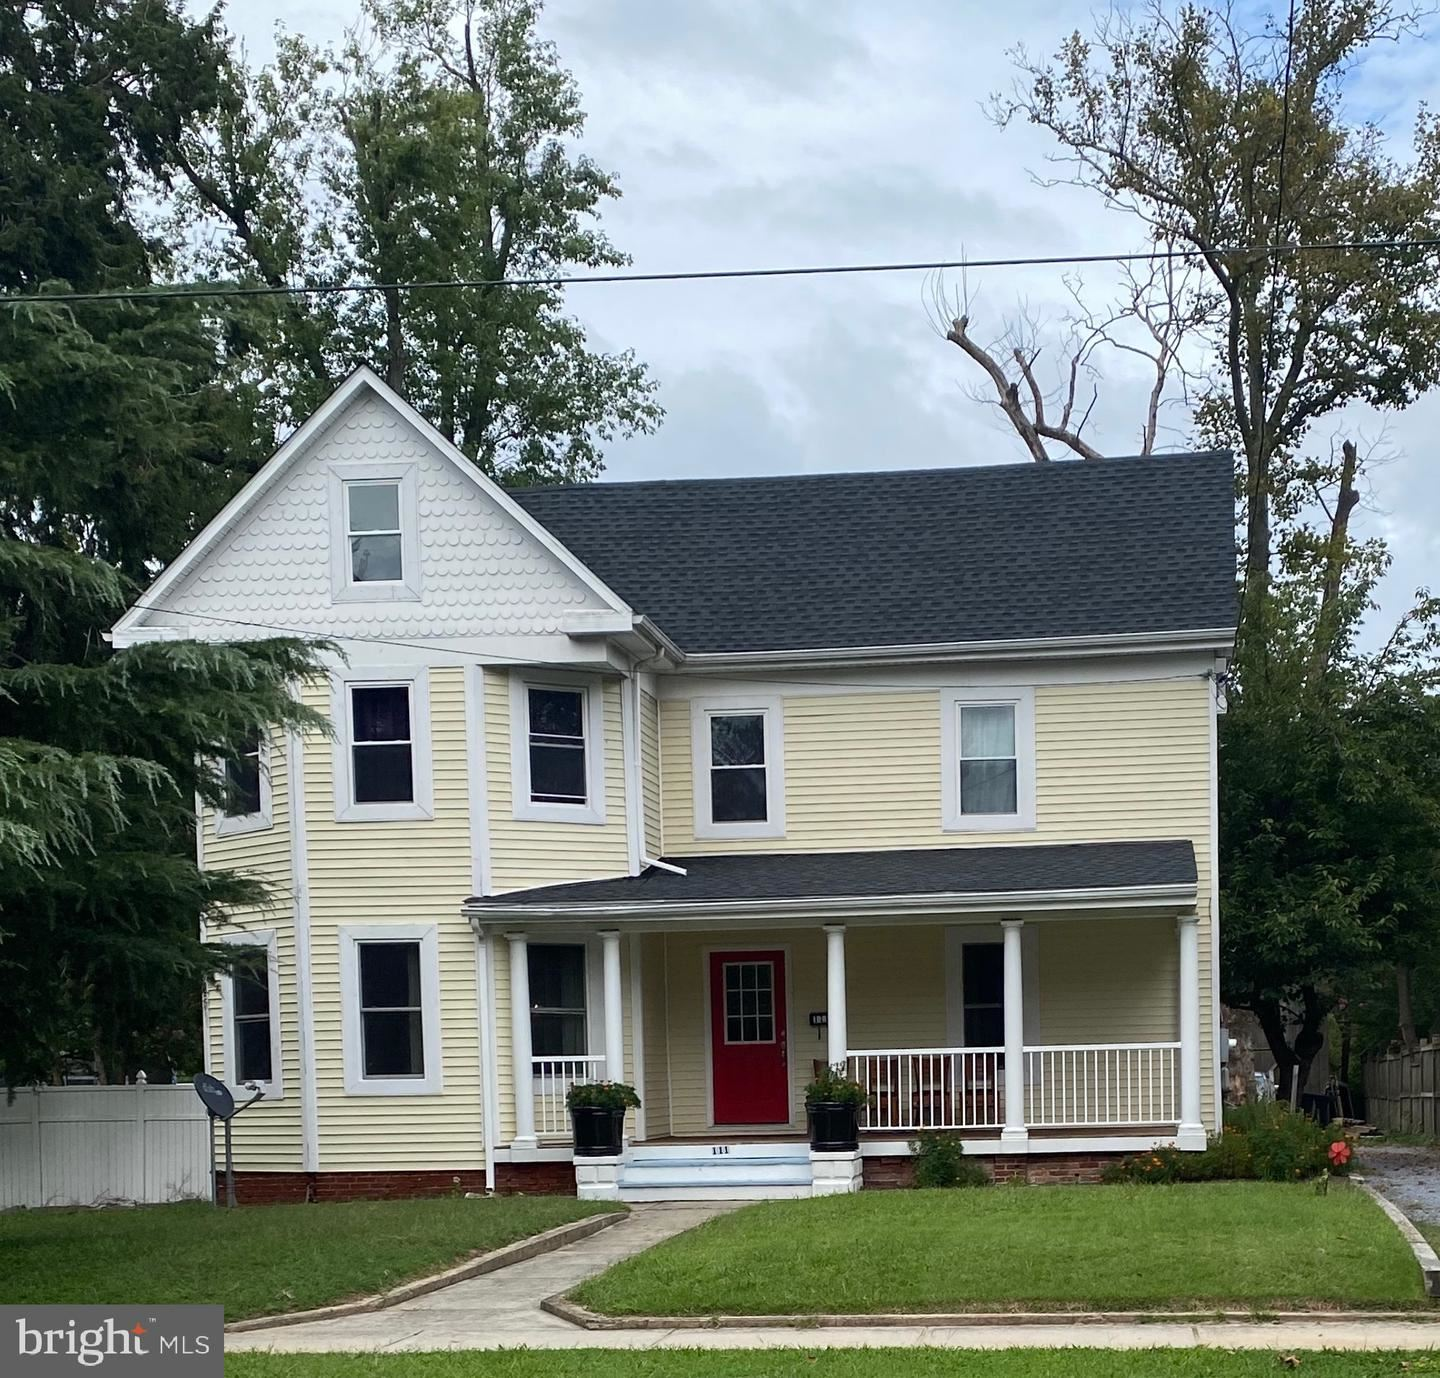 Photo for 111 S 5TH AVE, DENTON, MD 21629 (MLS # MDCM124504)